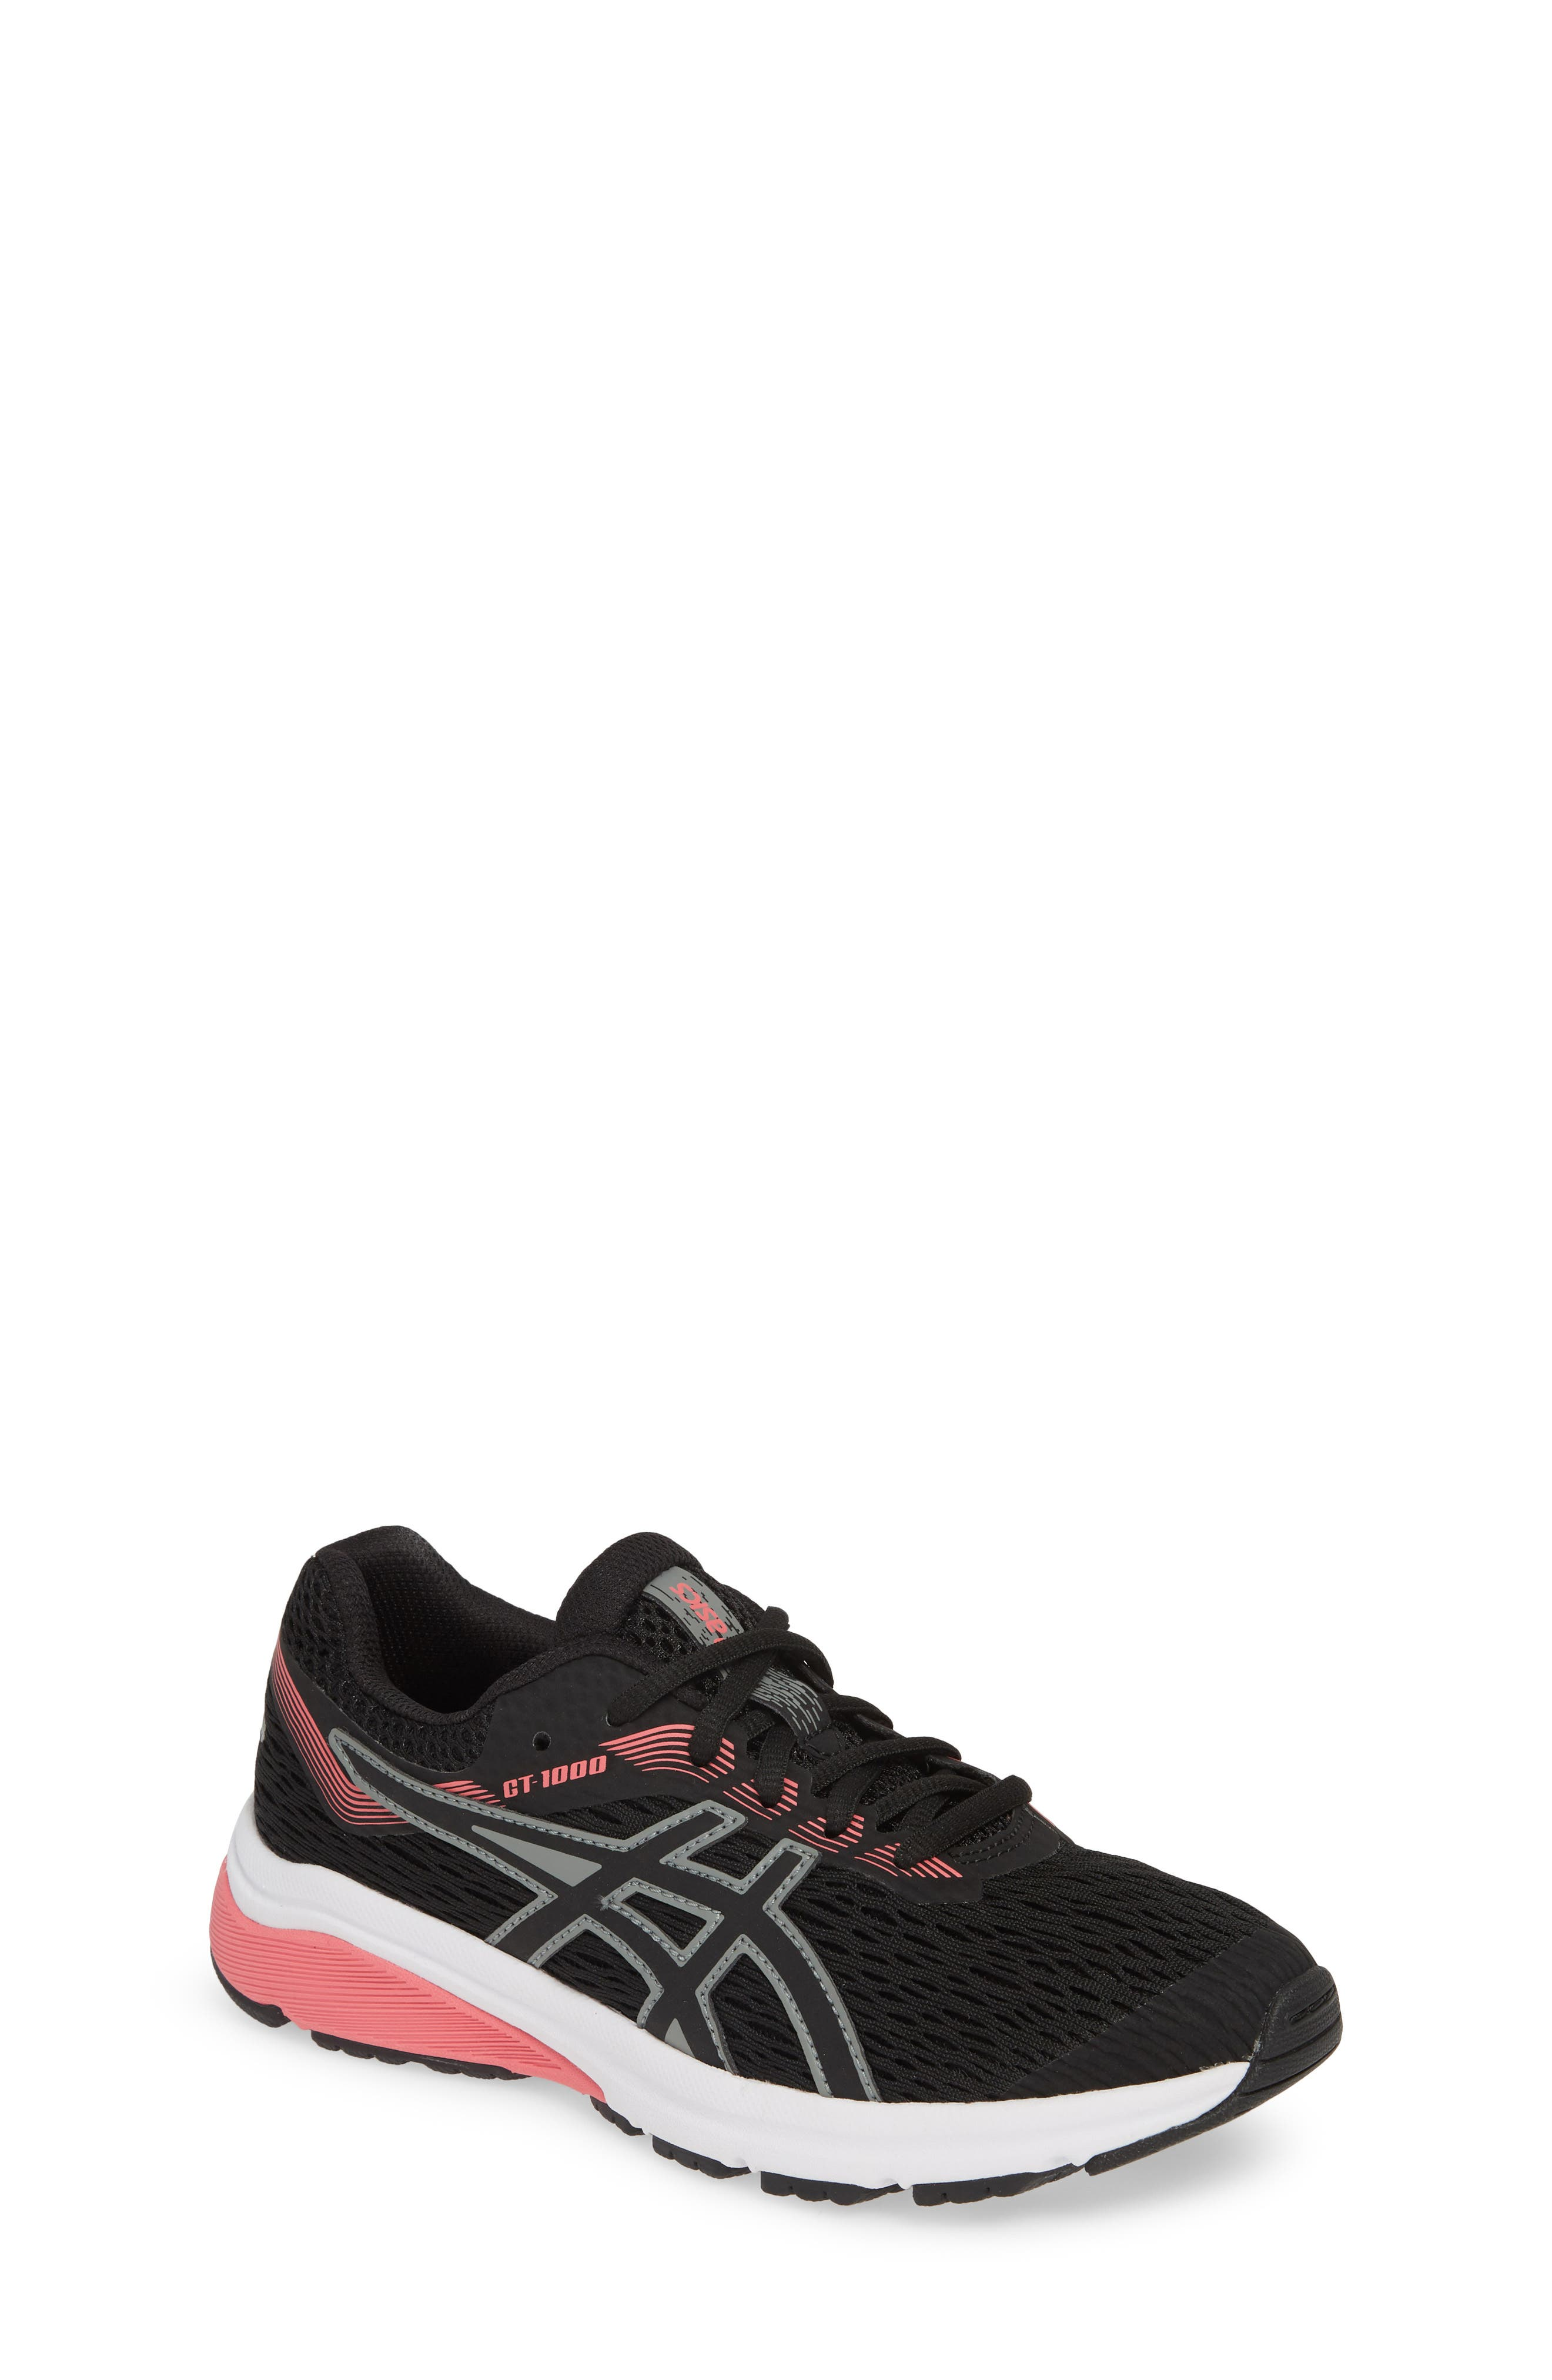 ASICS<SUP>®</SUP> GT 1000 7 Running Shoe, Main, color, BLACK/ BLACK